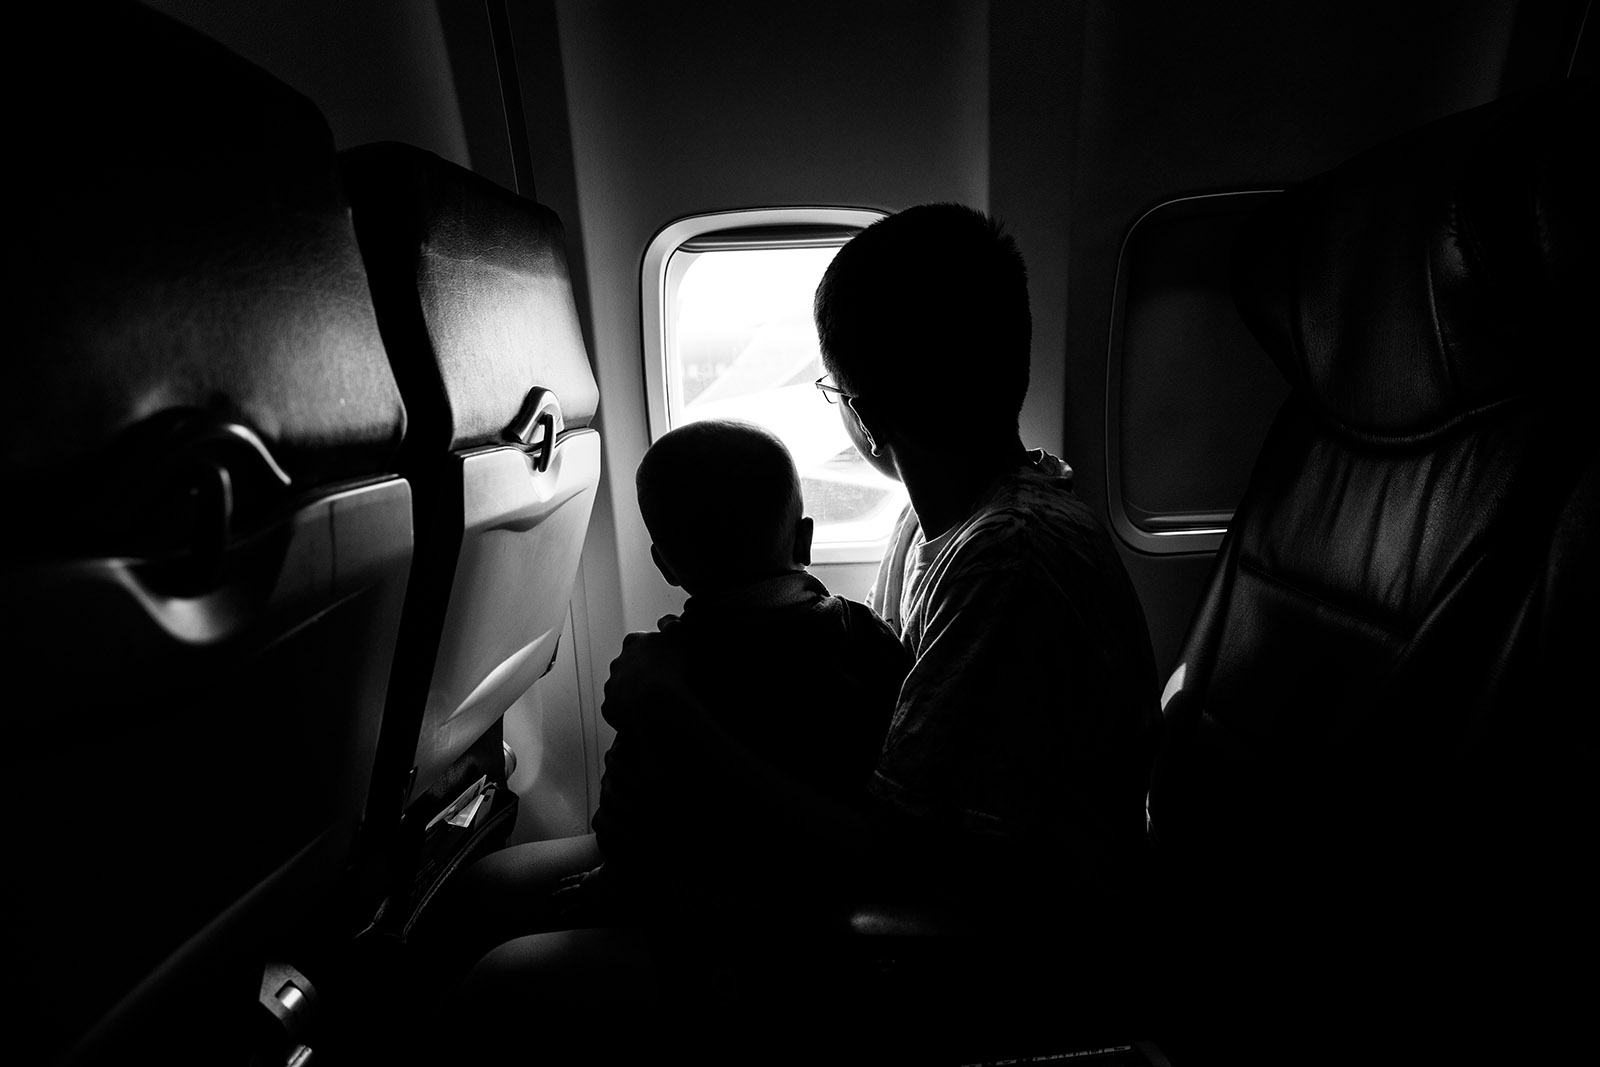 Boys on airplane